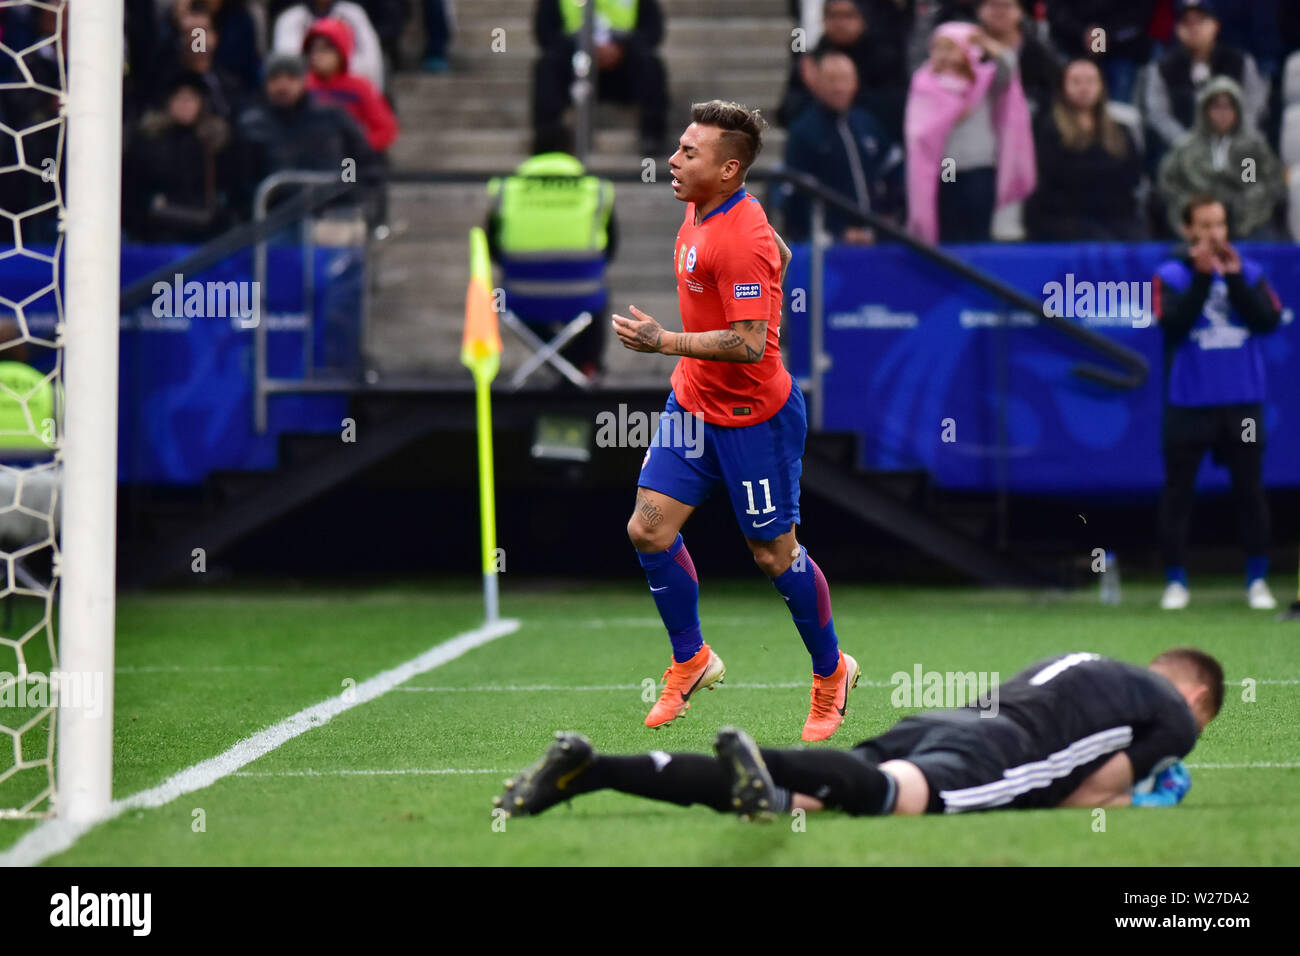 Sao Paulo, Brazil, July 06nd, 2019 - Eduardo Vargas - Match between Argentina and Chile, valid for the competition of 3rd place of CONMEBOL Copa América Brasil 2019, held in the Corinthians Arena, on the afternoon of this saturday, 06. (Credit: Eduardo Carmim/Alamy Live News) - Stock Image